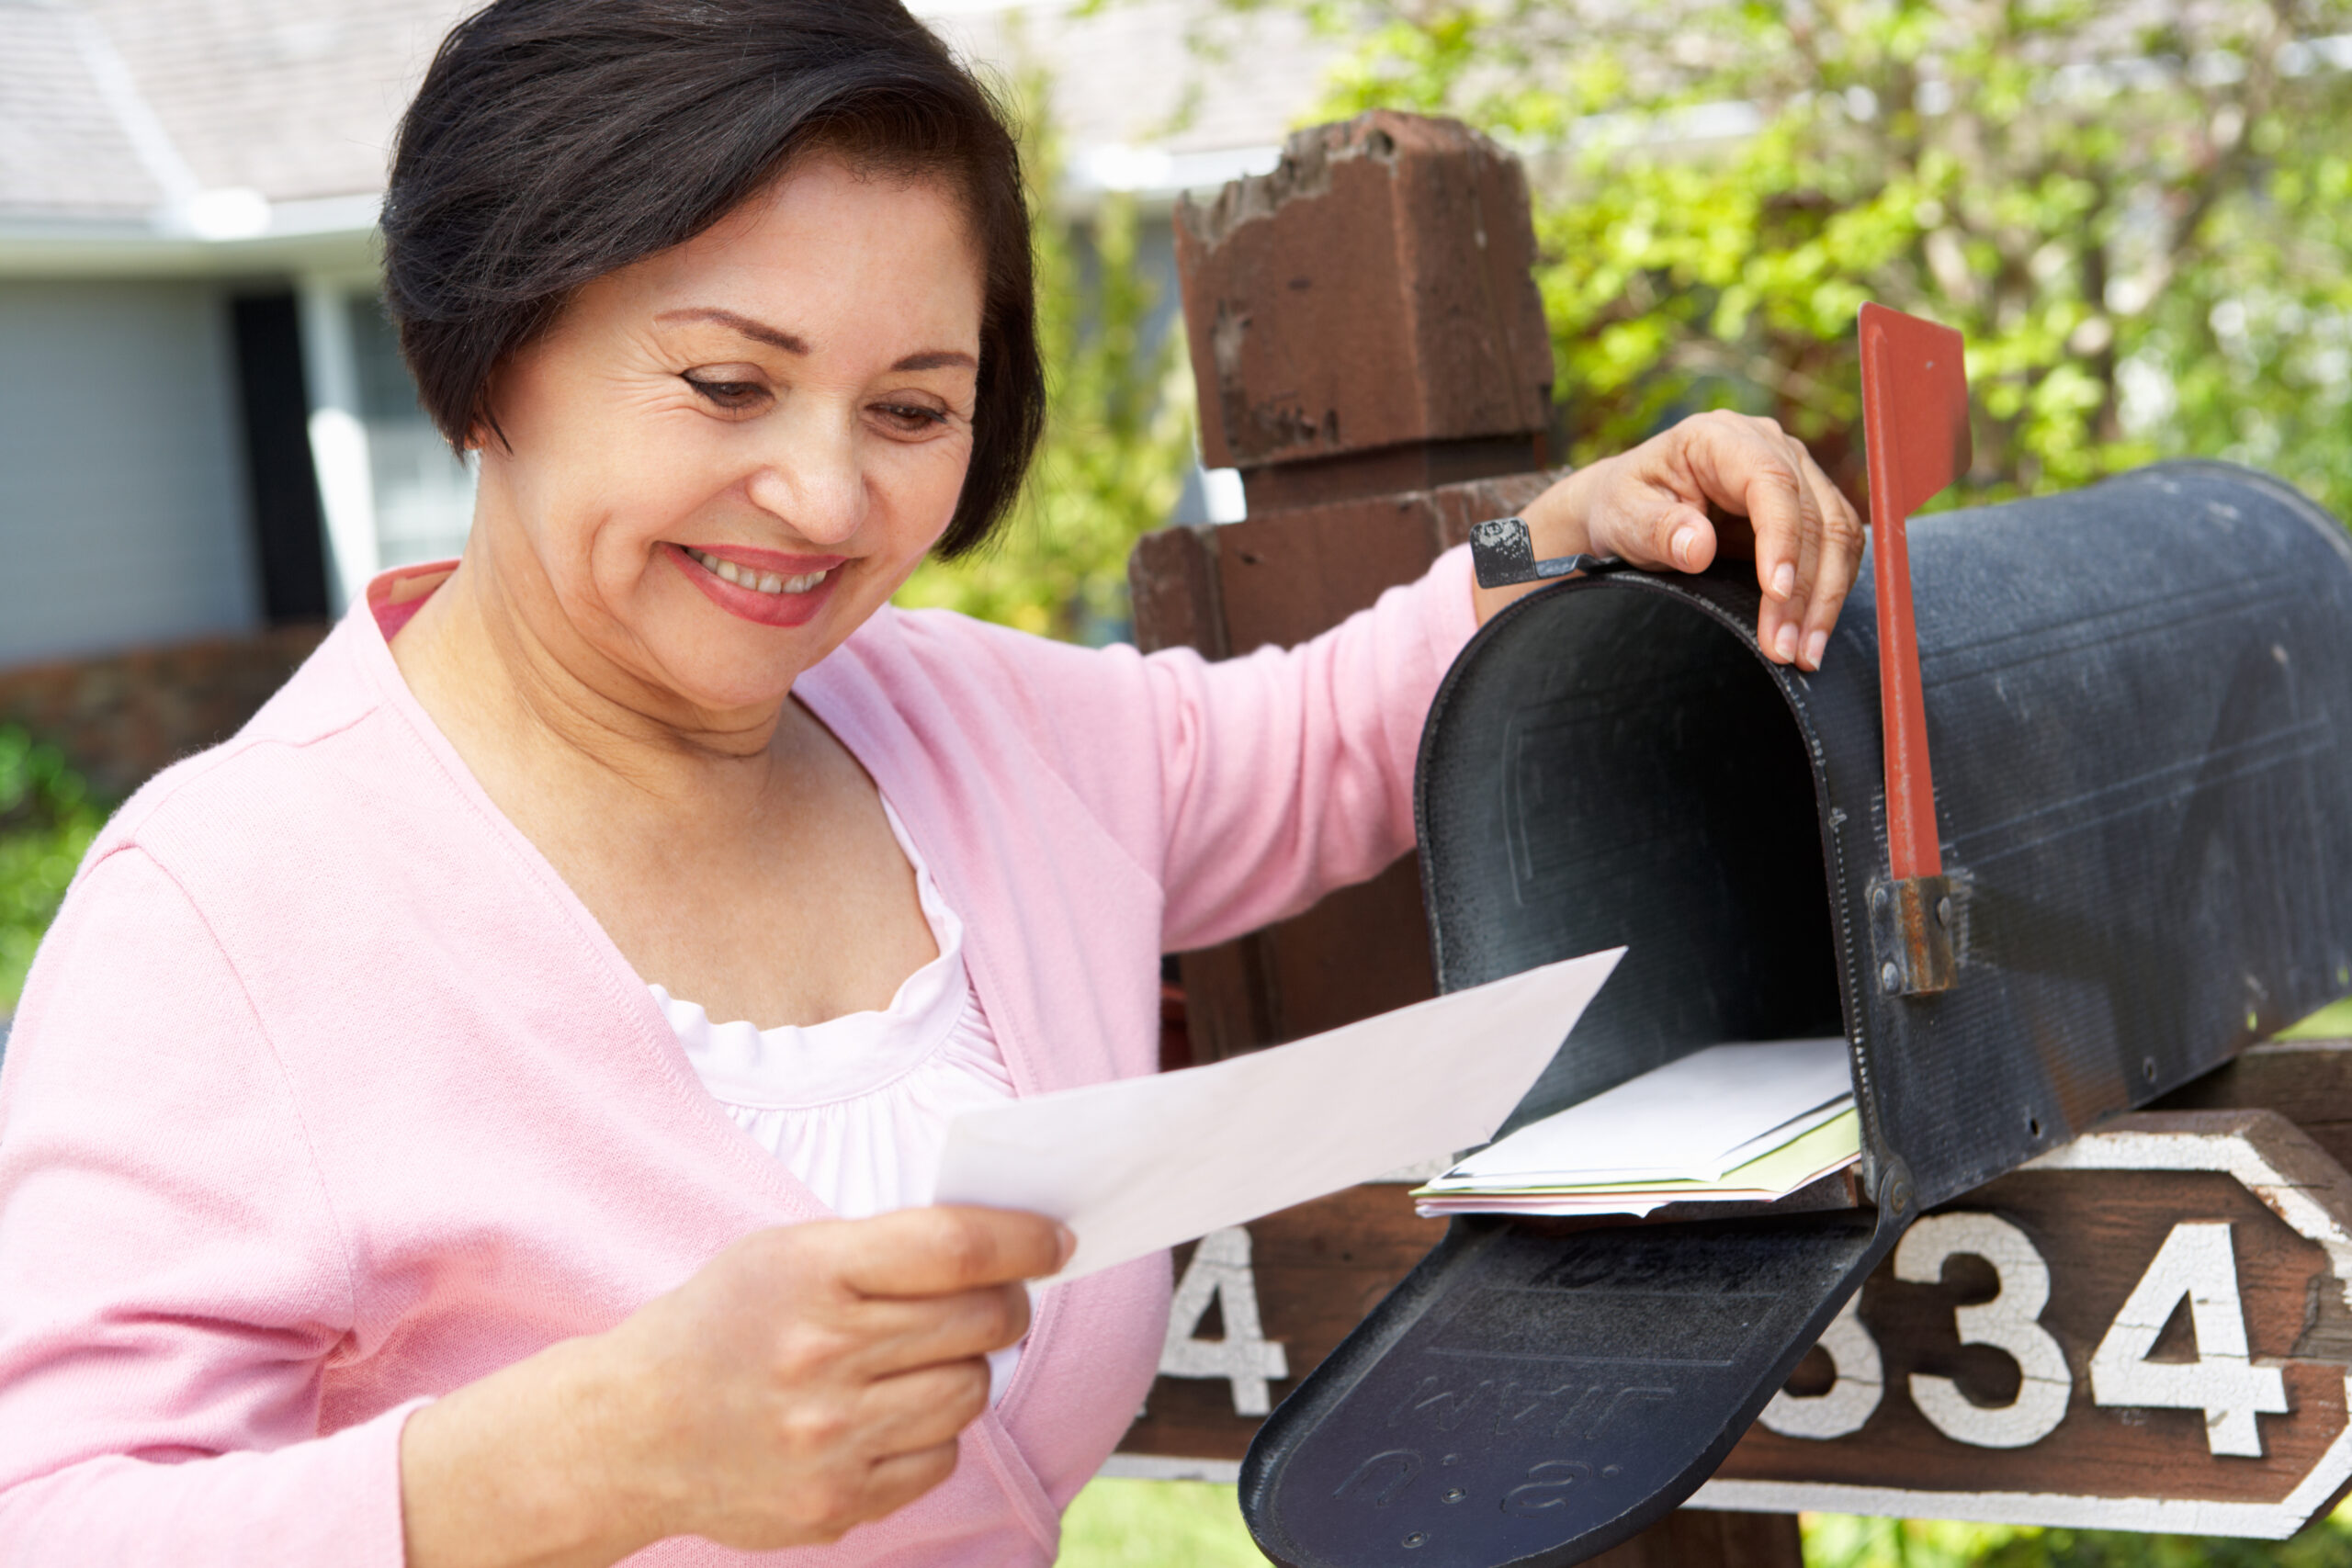 An immigrant checking her U.S. citizenship status by mail